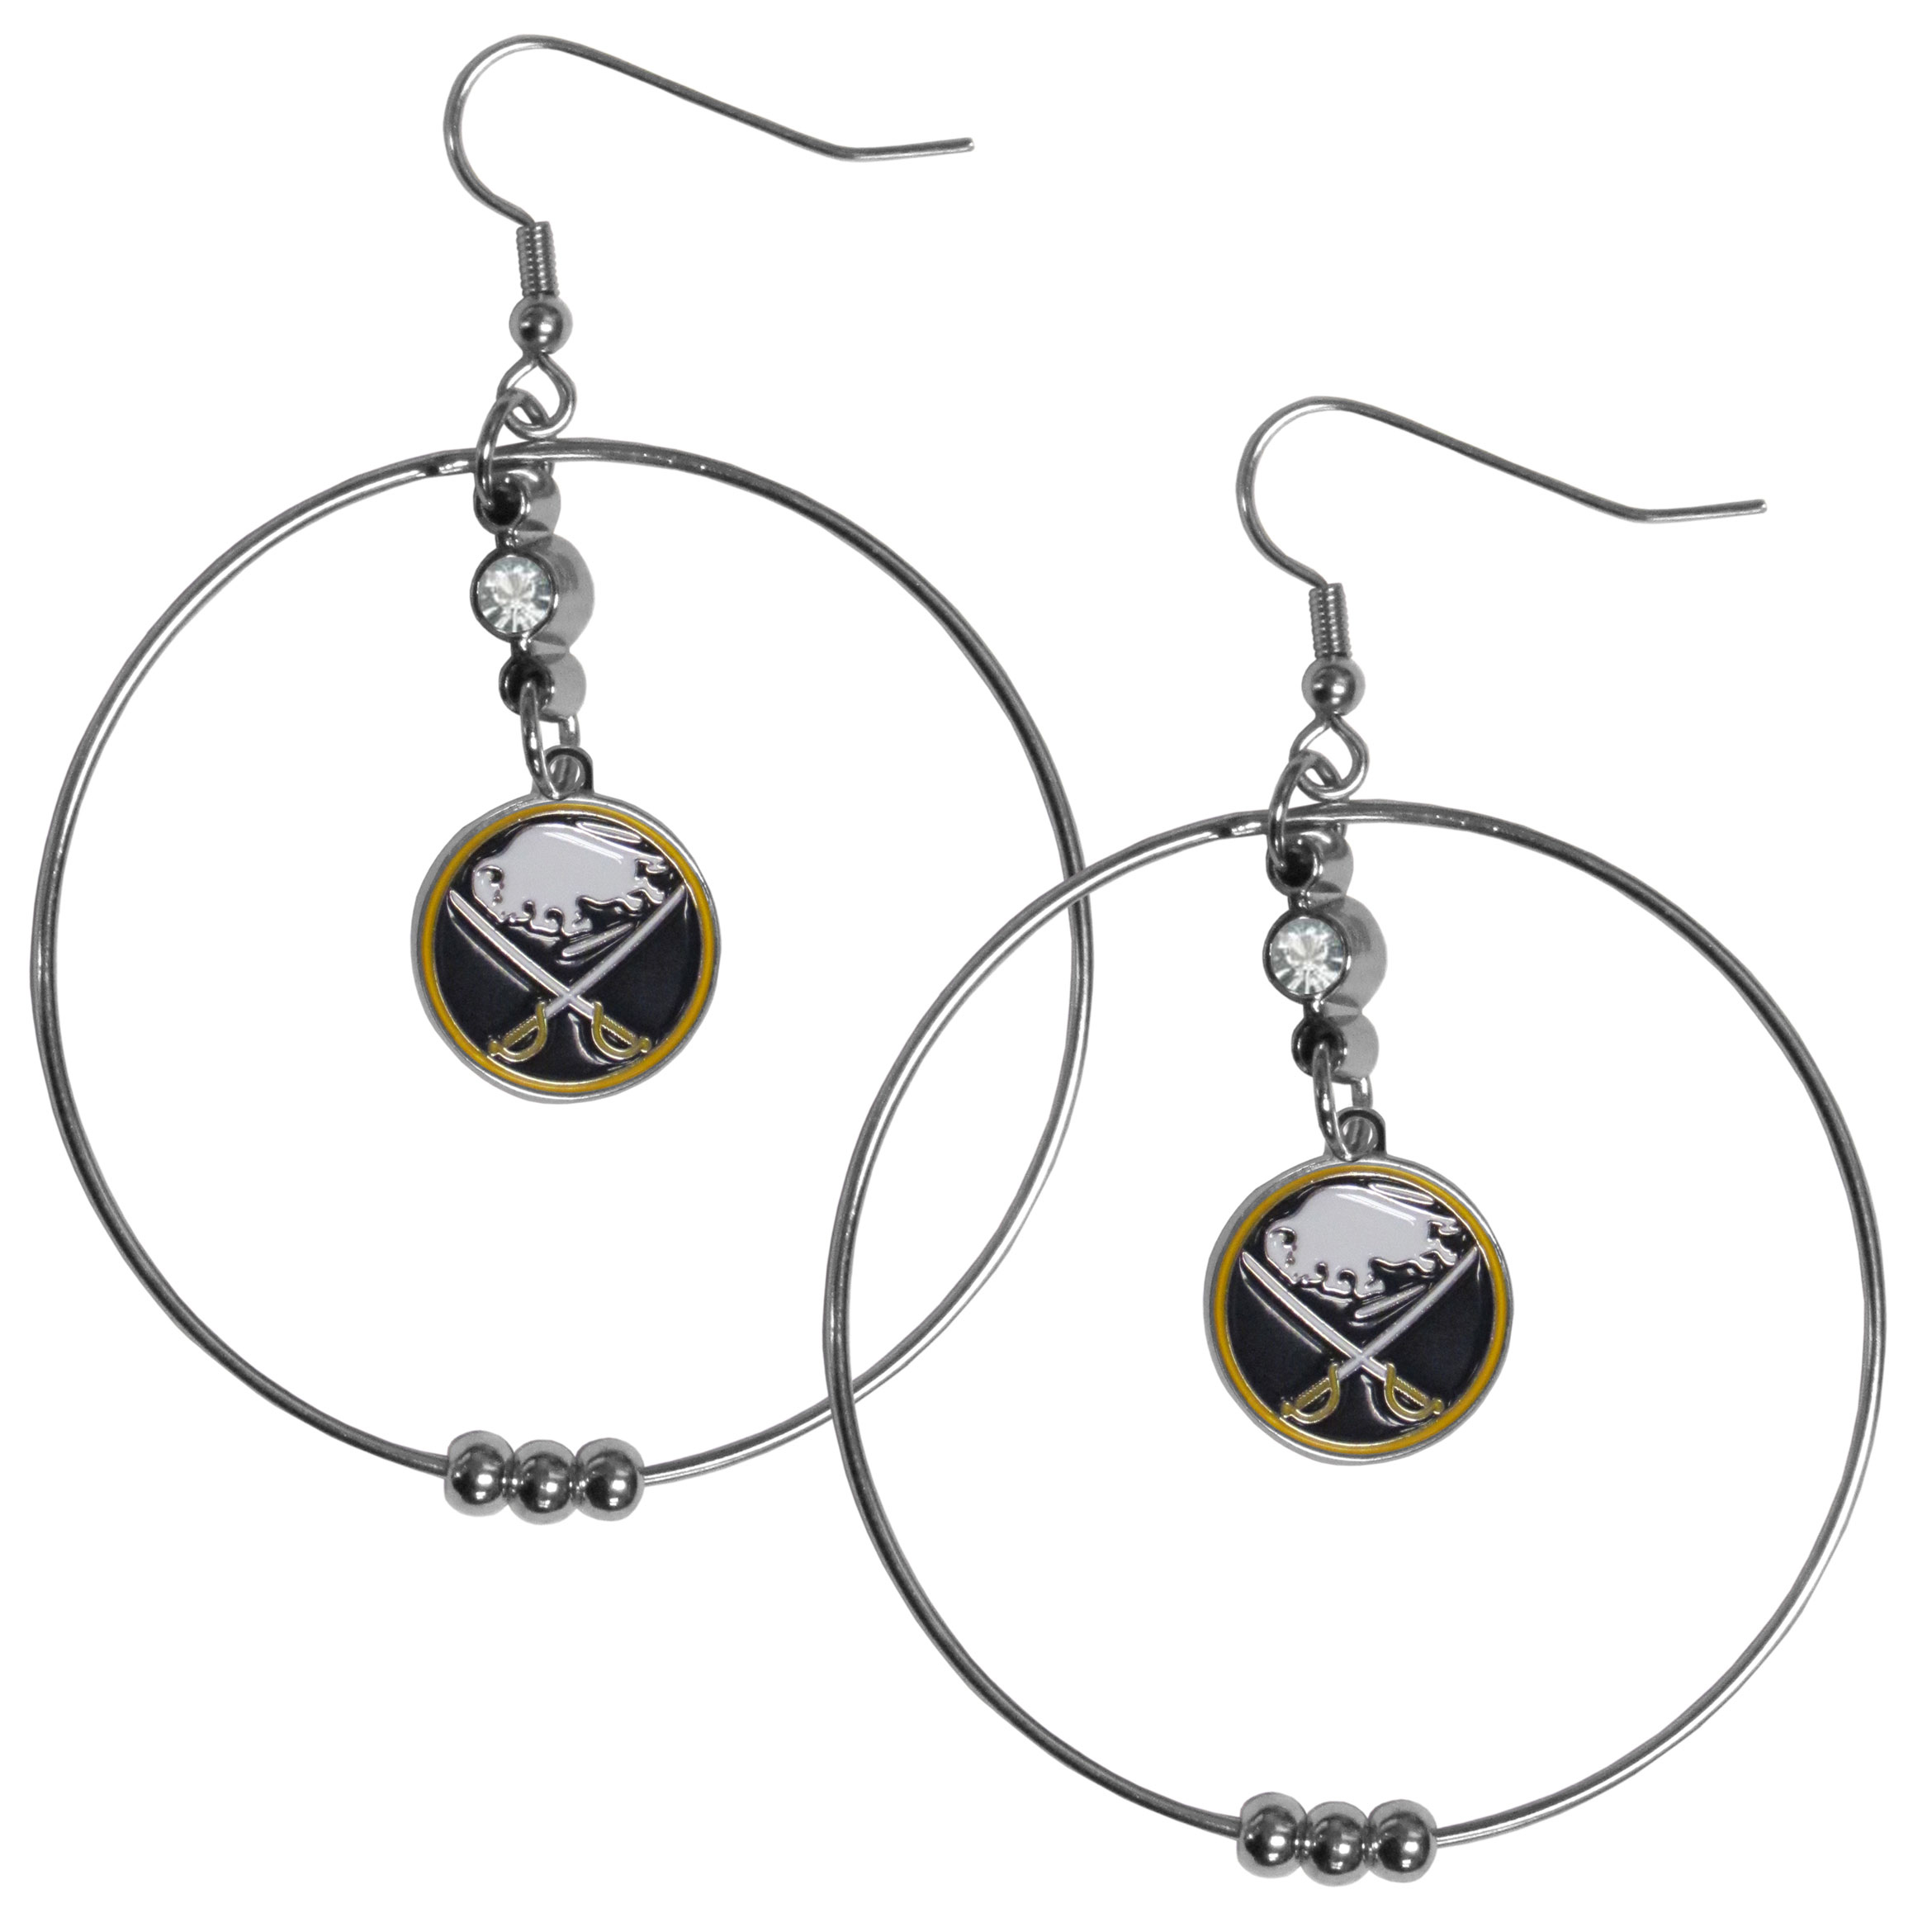 Buffalo Sabres® 2 Inch Hoop Earrings - Our large hoop earrings have a fully cast and enameled Buffalo Sabres® charm with enameled detail and a high polish nickel free chrome finish and rhinestone access. Hypoallergenic fishhook posts.